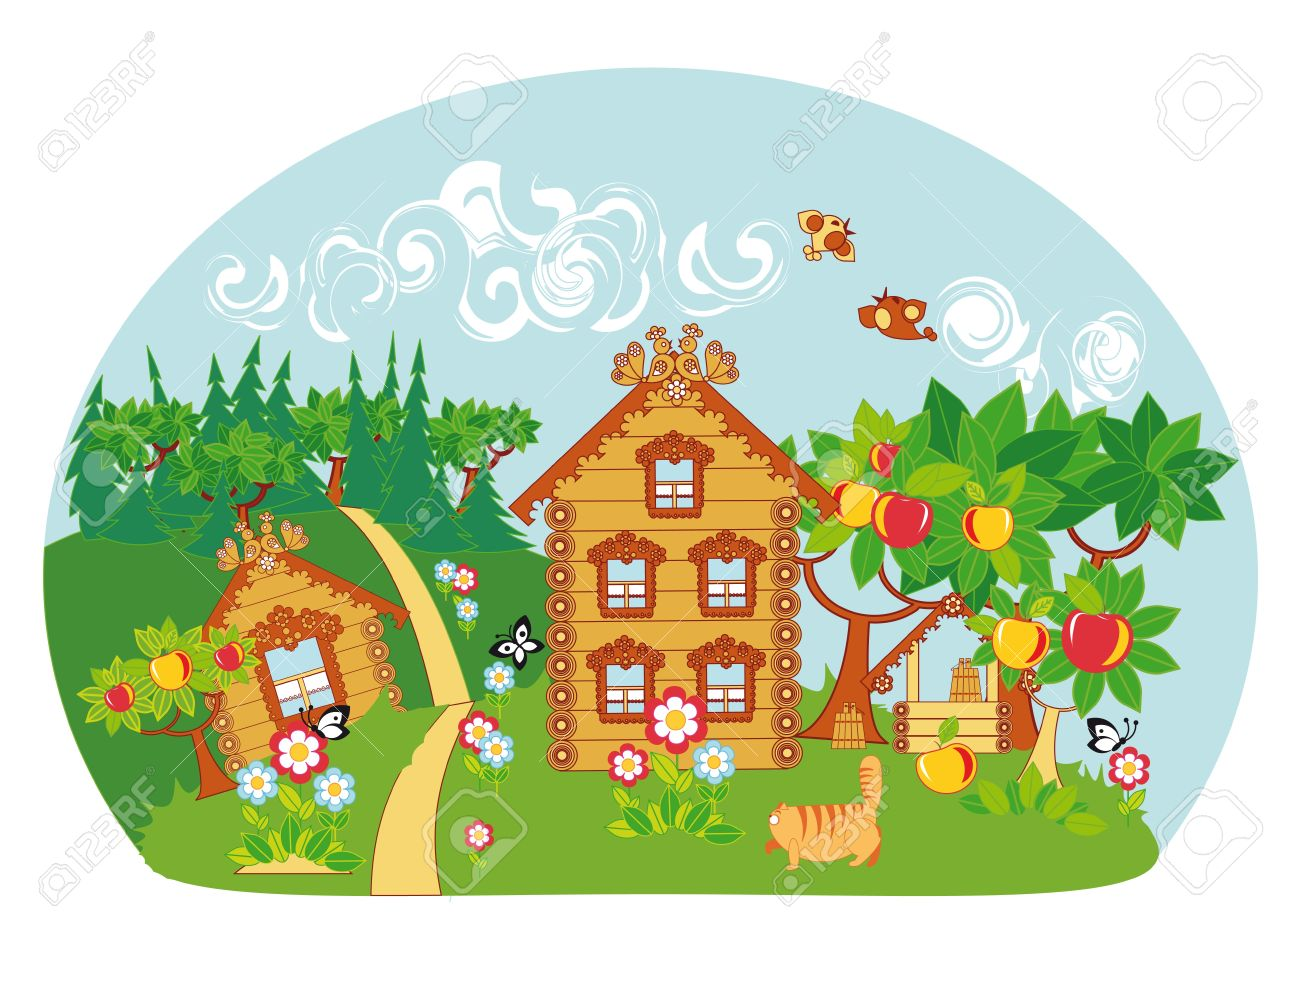 An idyllic rural landscape. Wooden houses, apple trees, well, blooming flowers and birds and butterflies. Stock Vector - 14007155